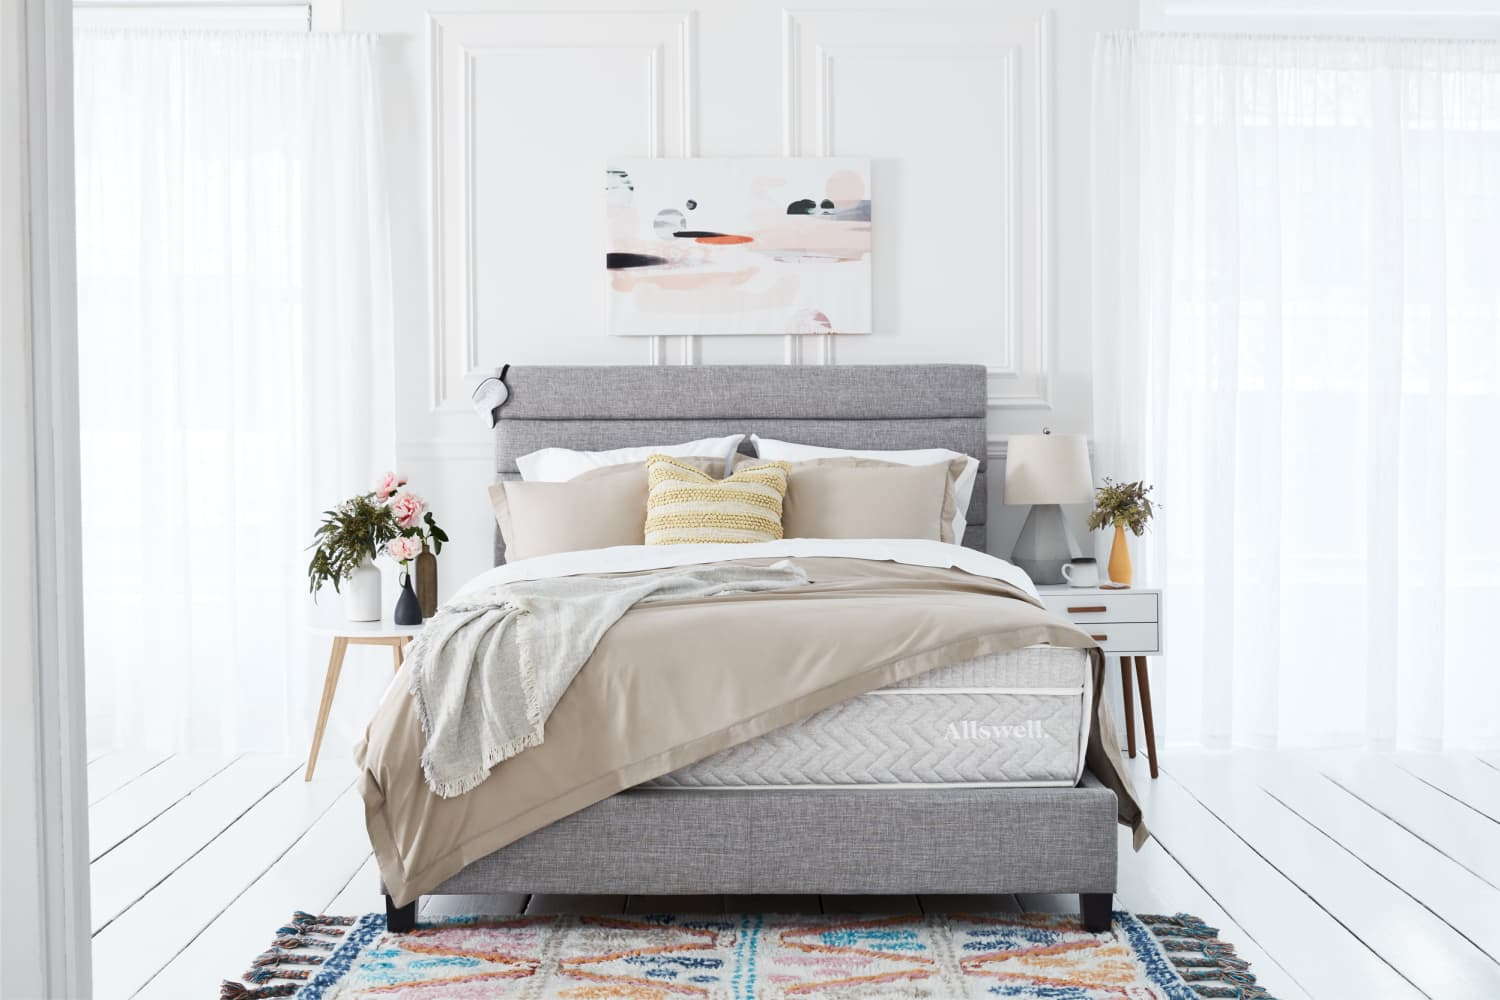 This Luxury Mattress is What Homebody Dreams are Made of—And it Costs Less Than $1,000